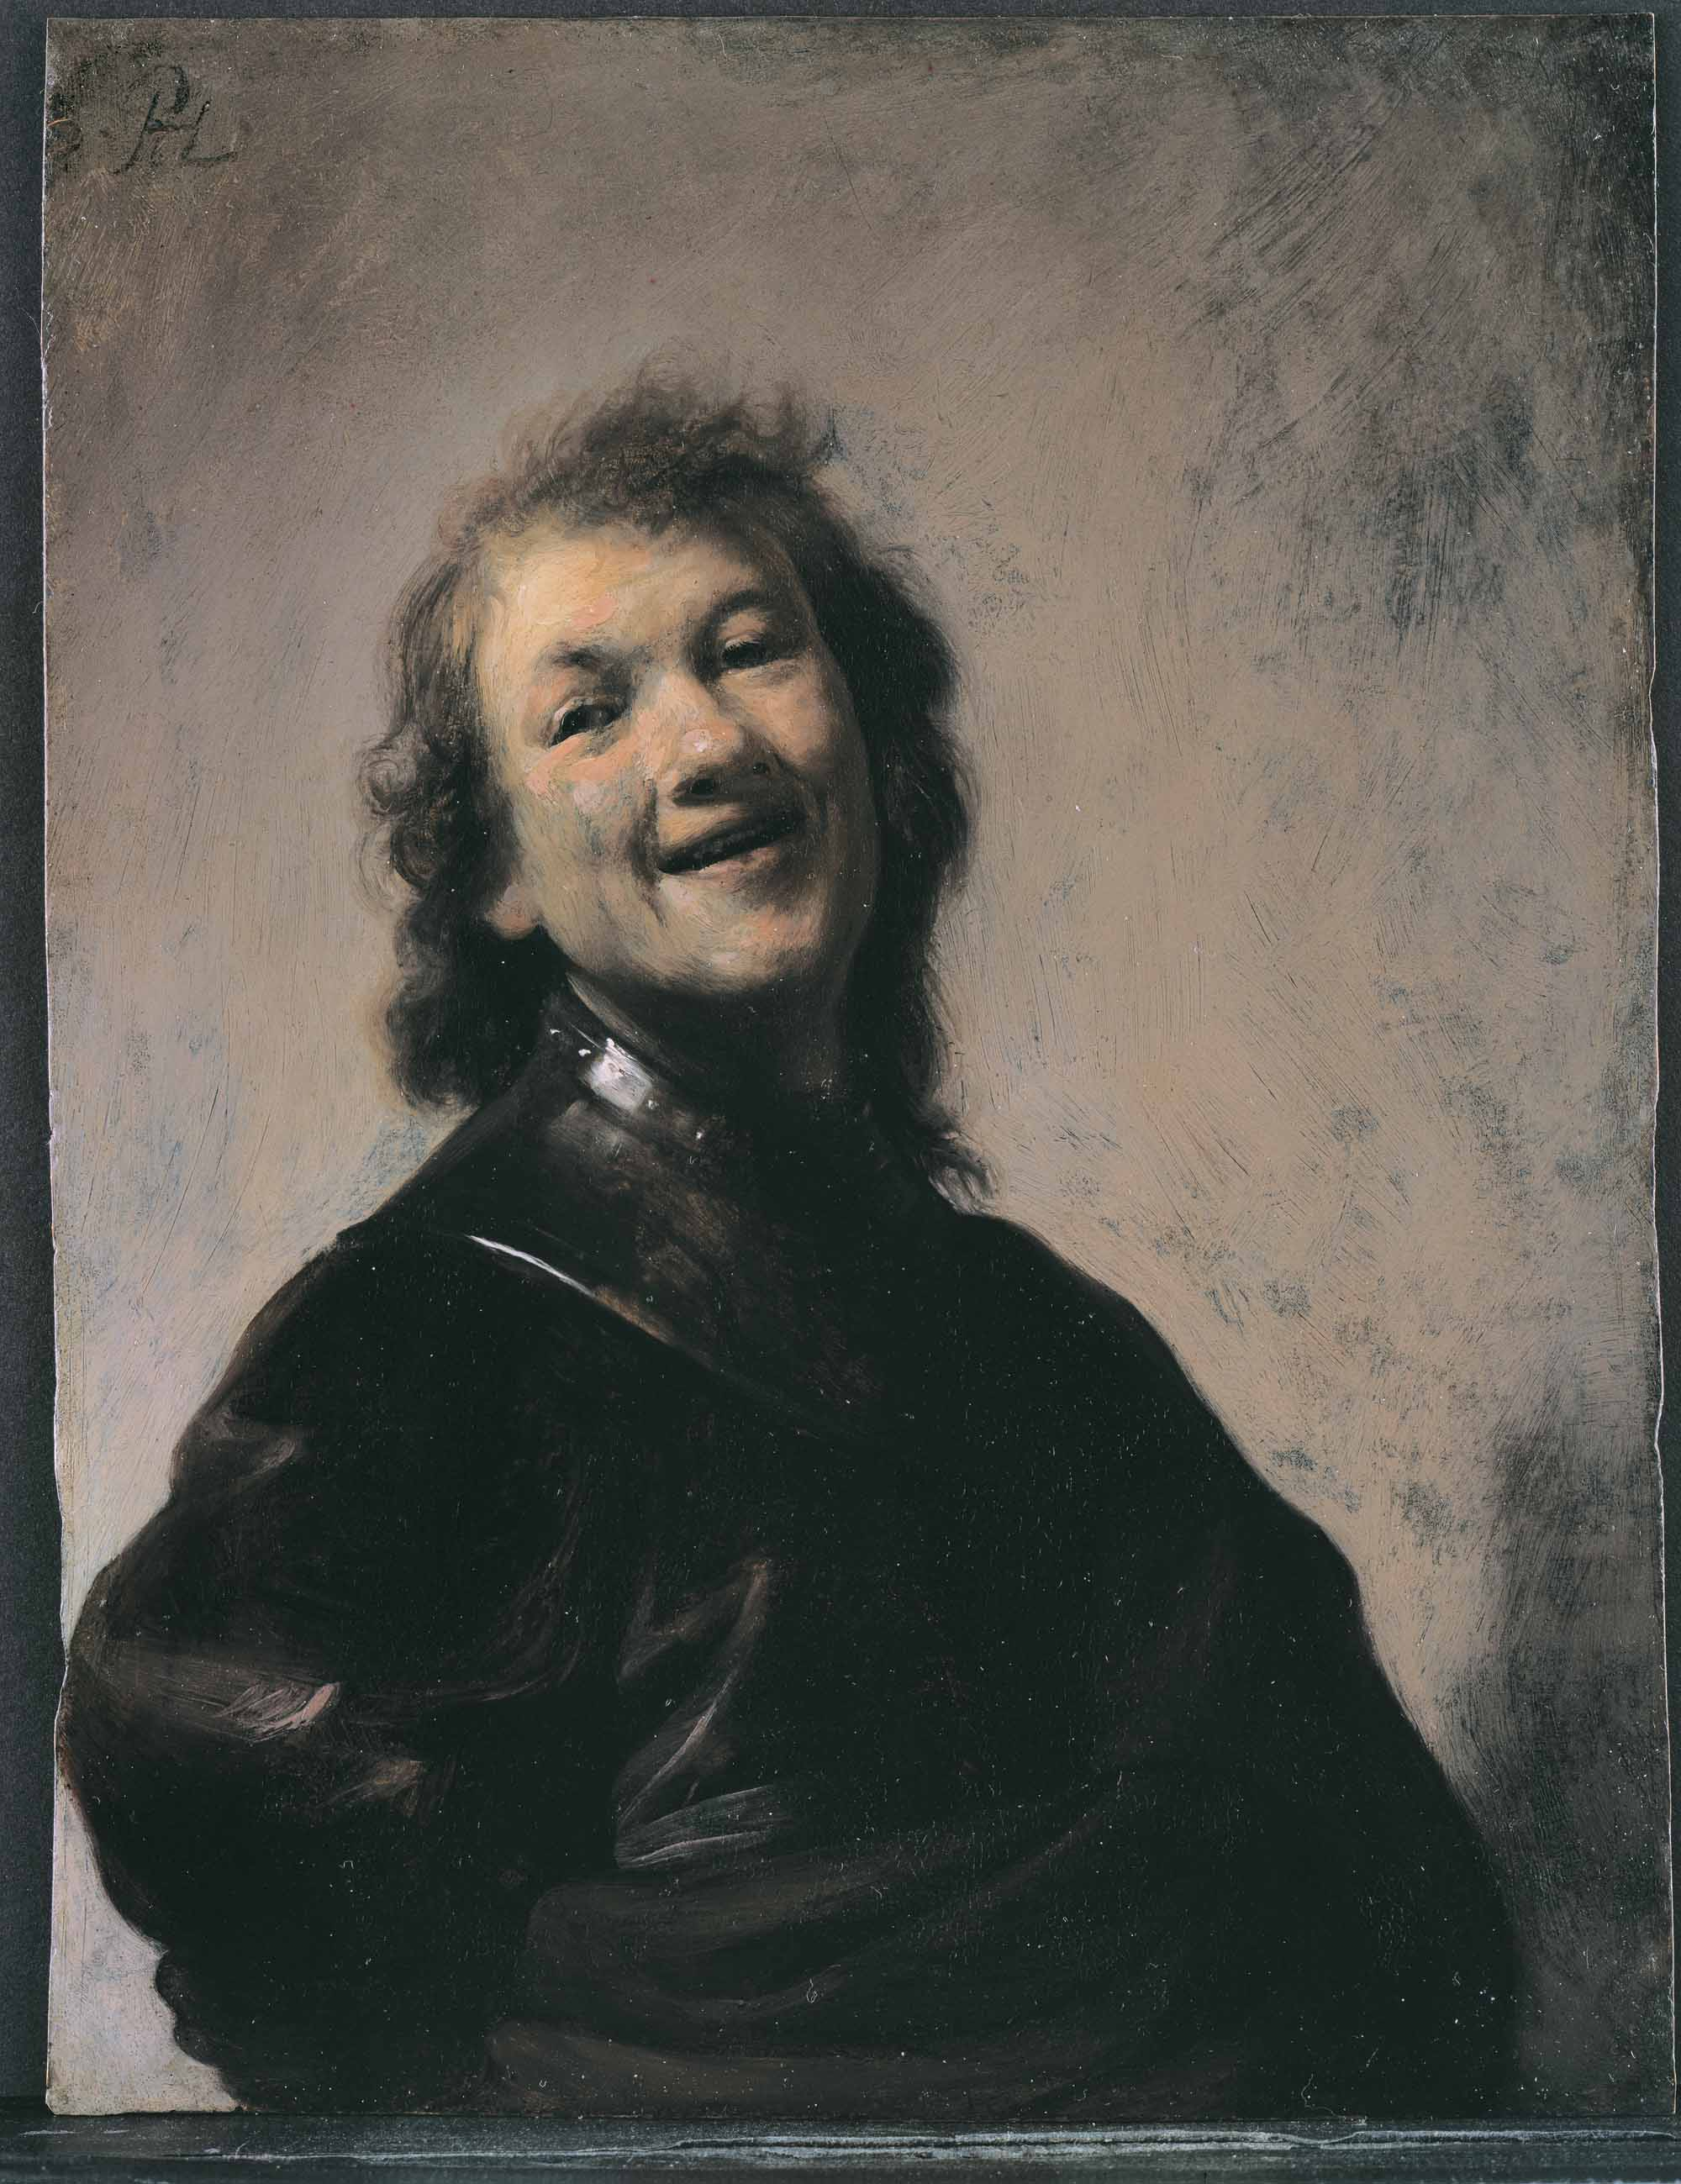 the cotswolds rembrandt gary schwartz art historian self portrait of rembrandt laughing owner unidentified